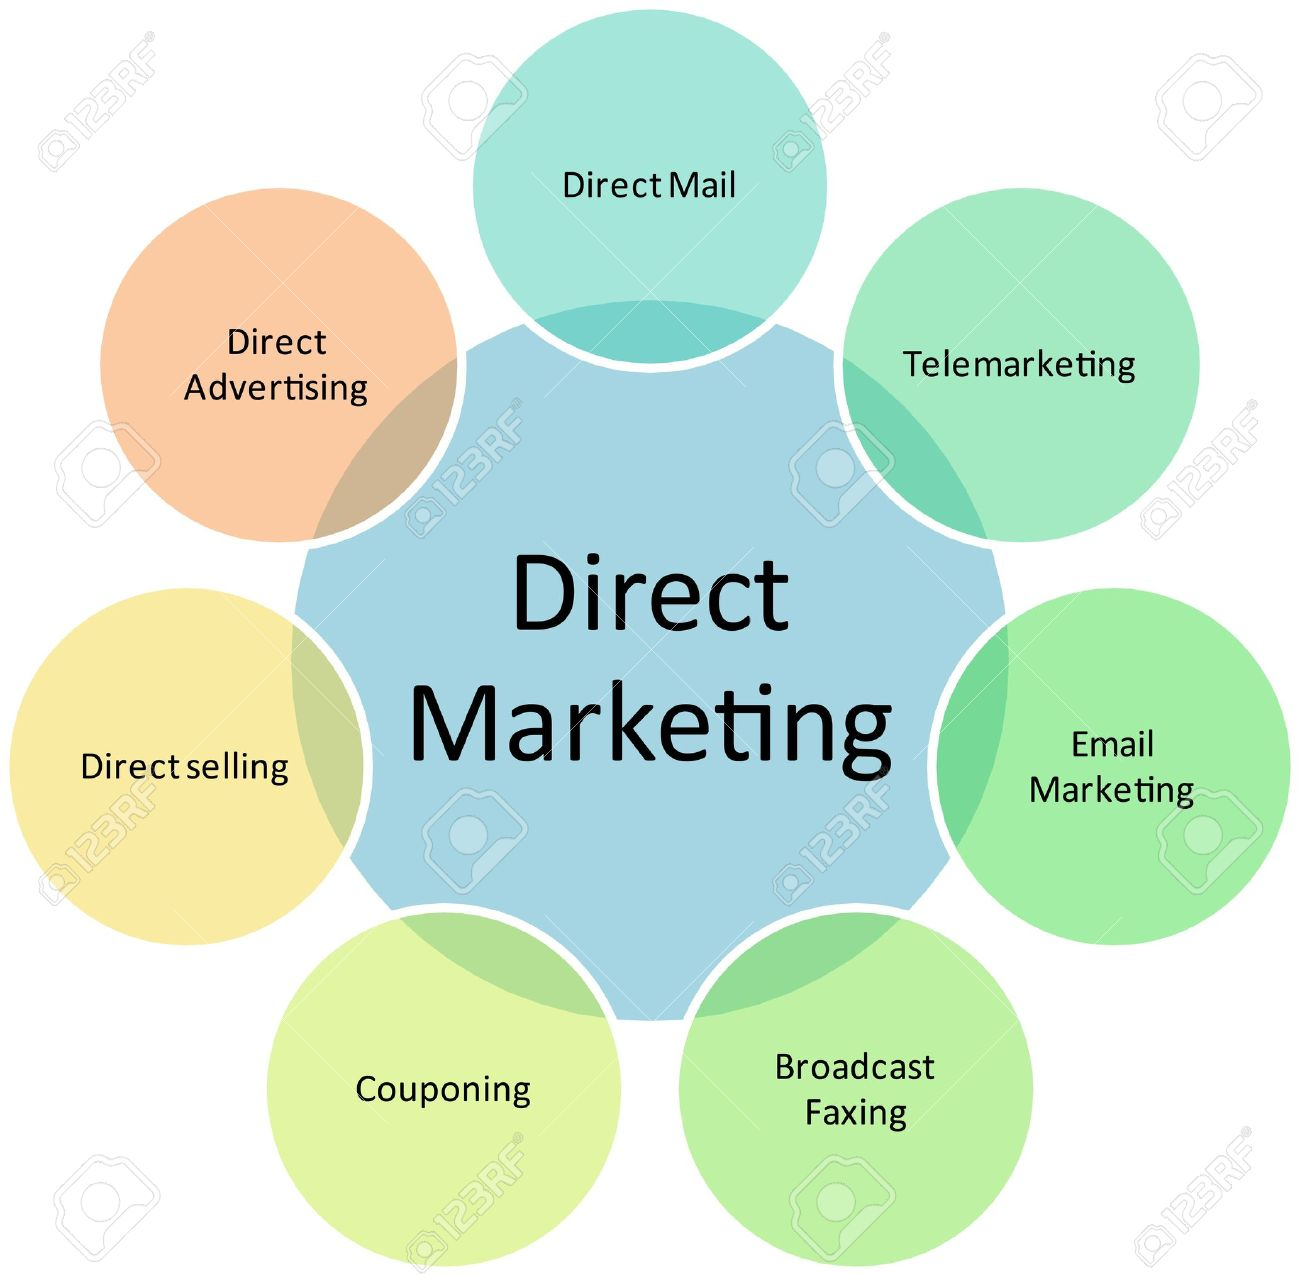 a definition and benefits of direct marketing